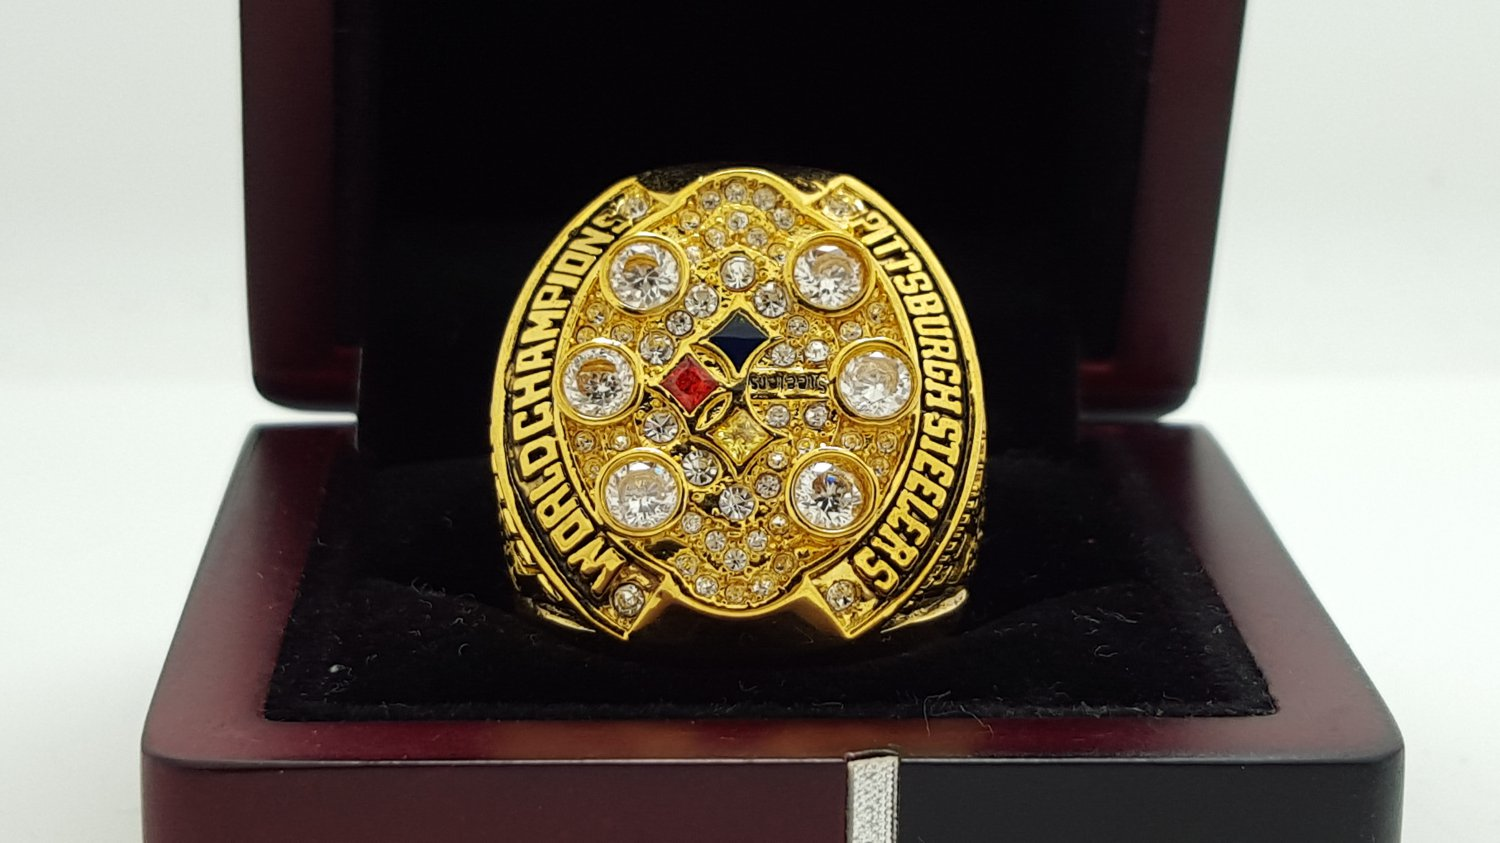 2008 Pittsburgh Steelers super bowl Championship Ring 8-14S